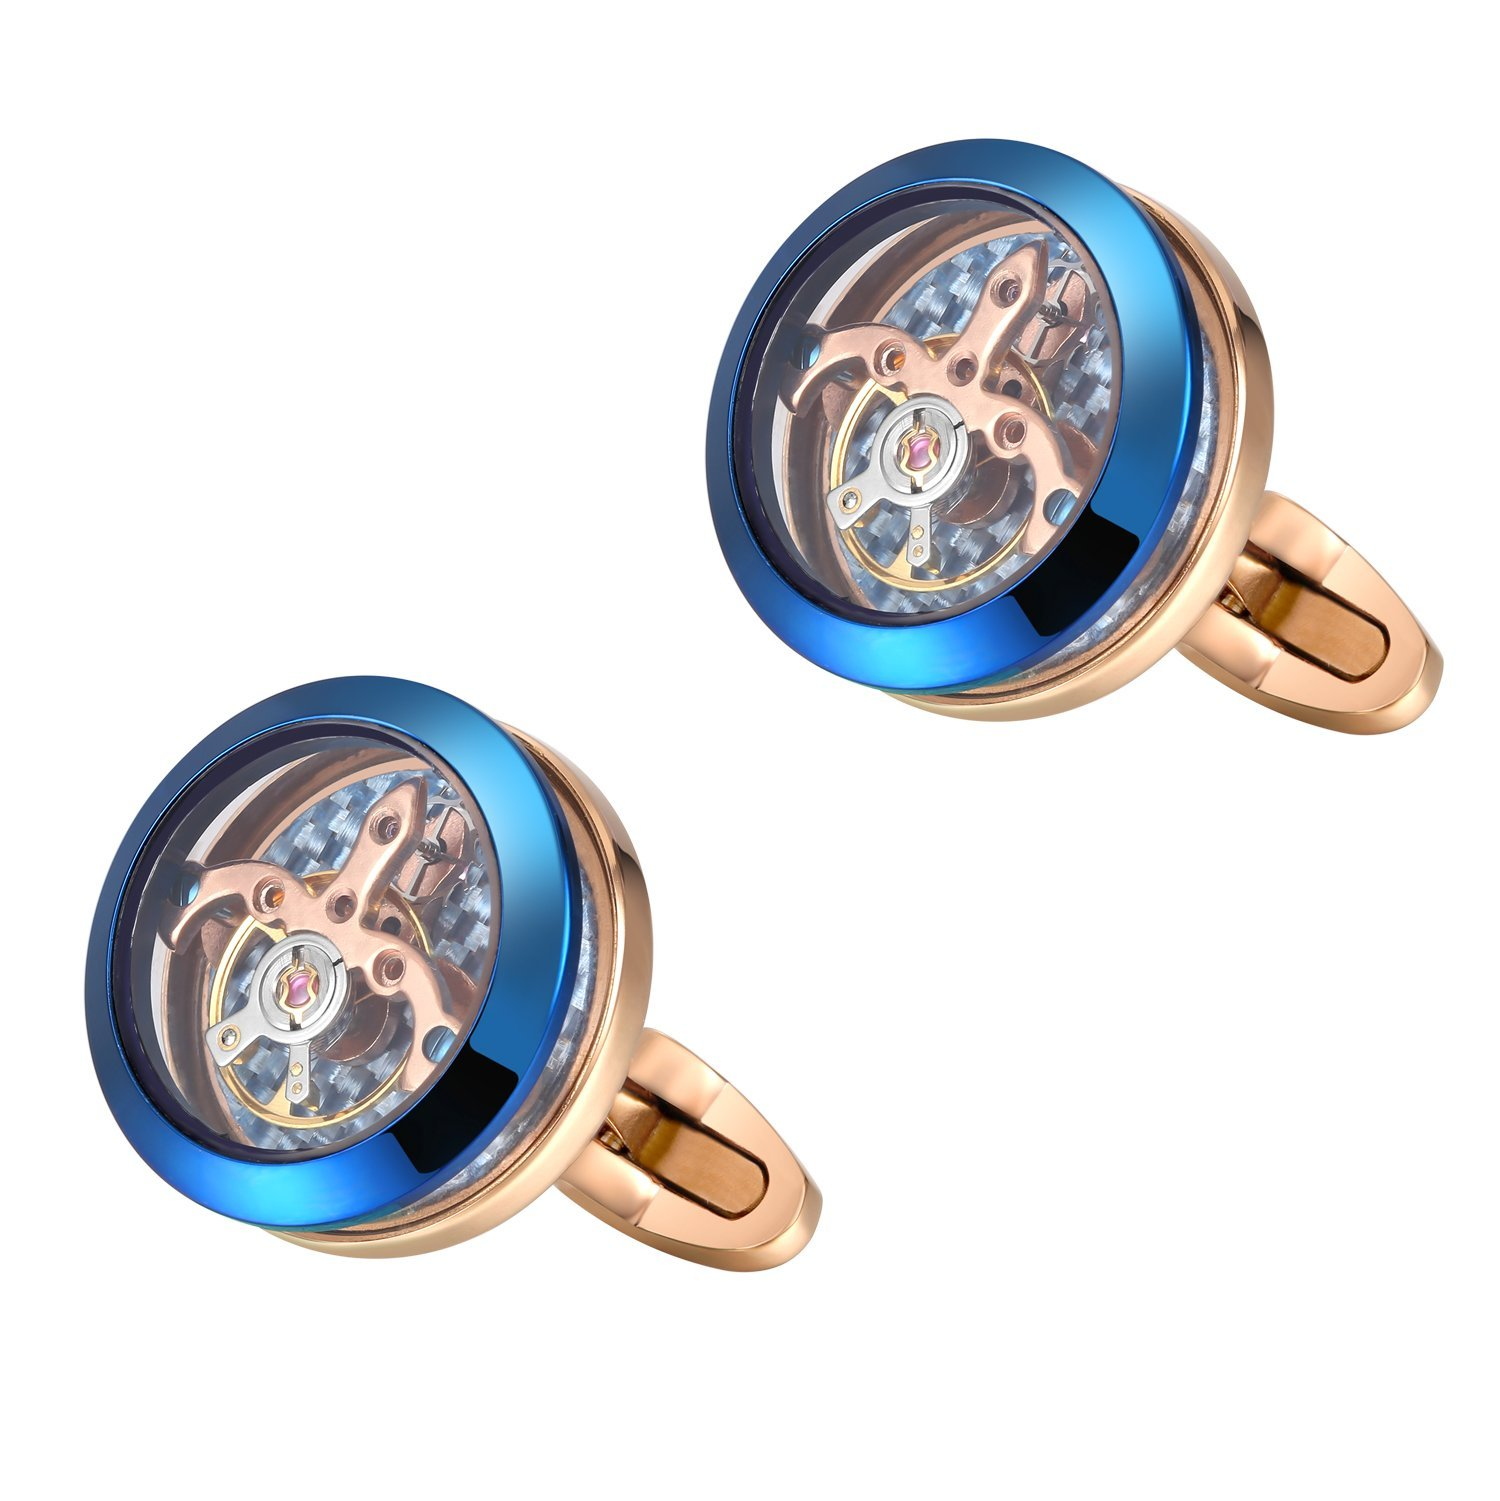 Dich Creat Men's Stainless Steel Rose Gold Plated Tourbillon Cufflinks with Carbon Fiber Backing (Blue/Rose Gold)